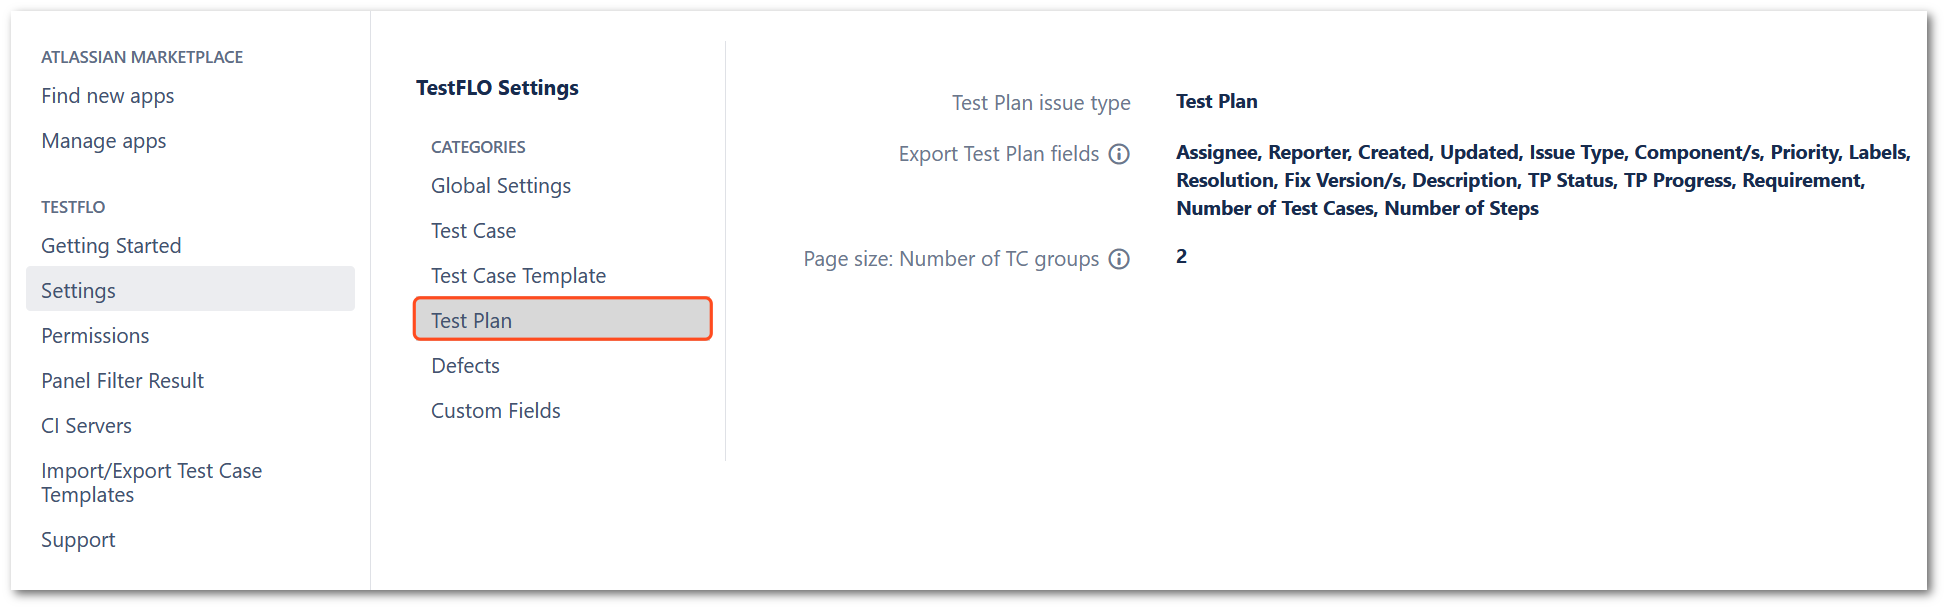 Test Plan section in TestFLO settings